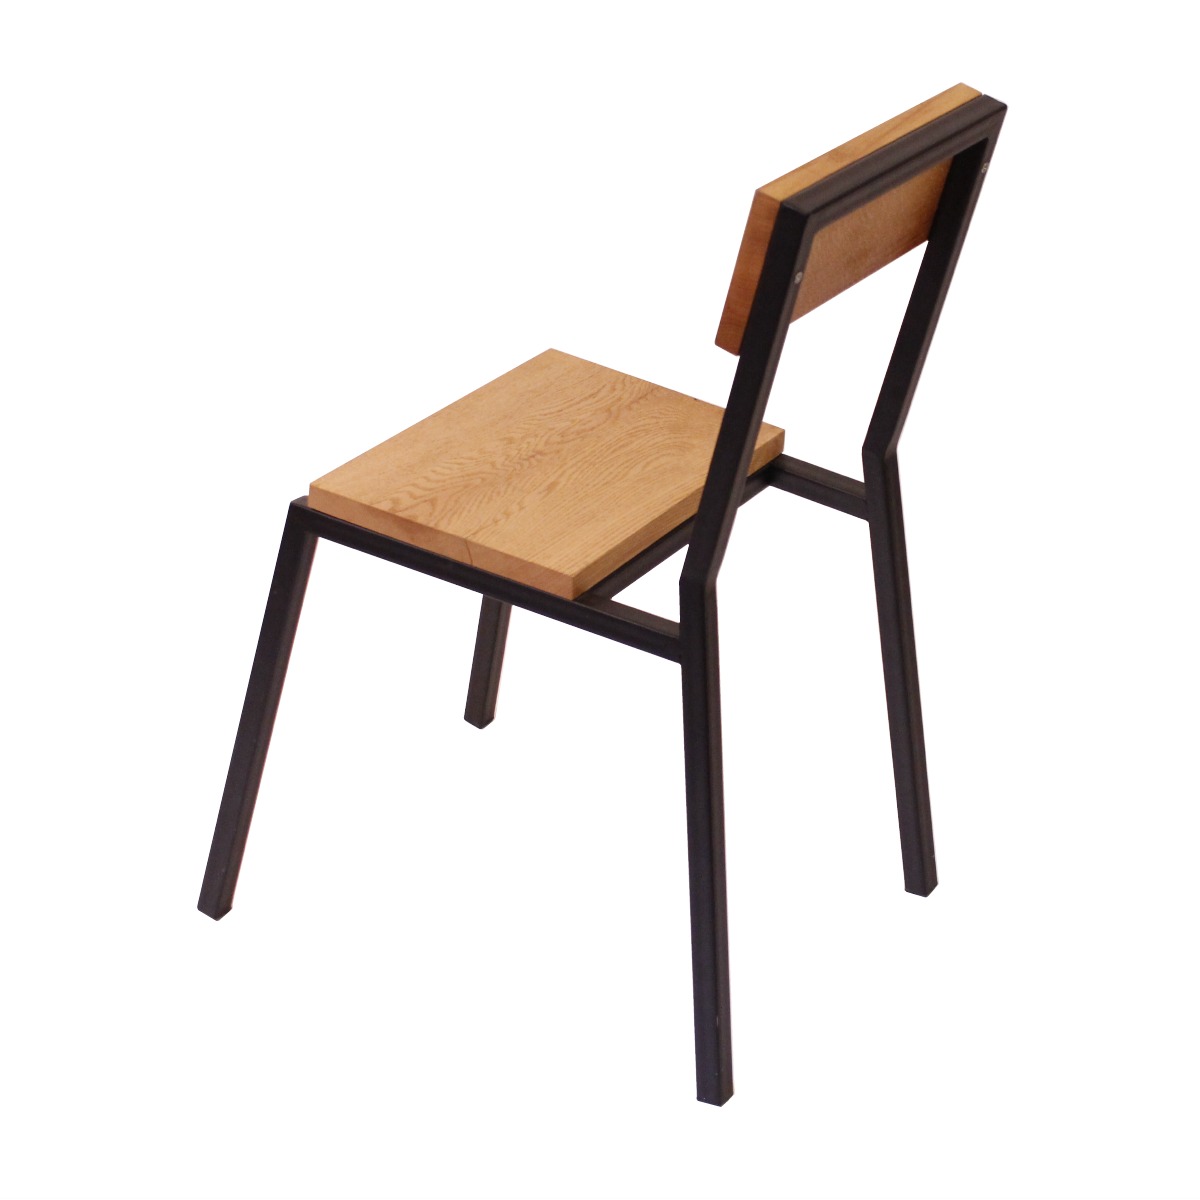 chair-3-quarter-back-oak-and-steel-png